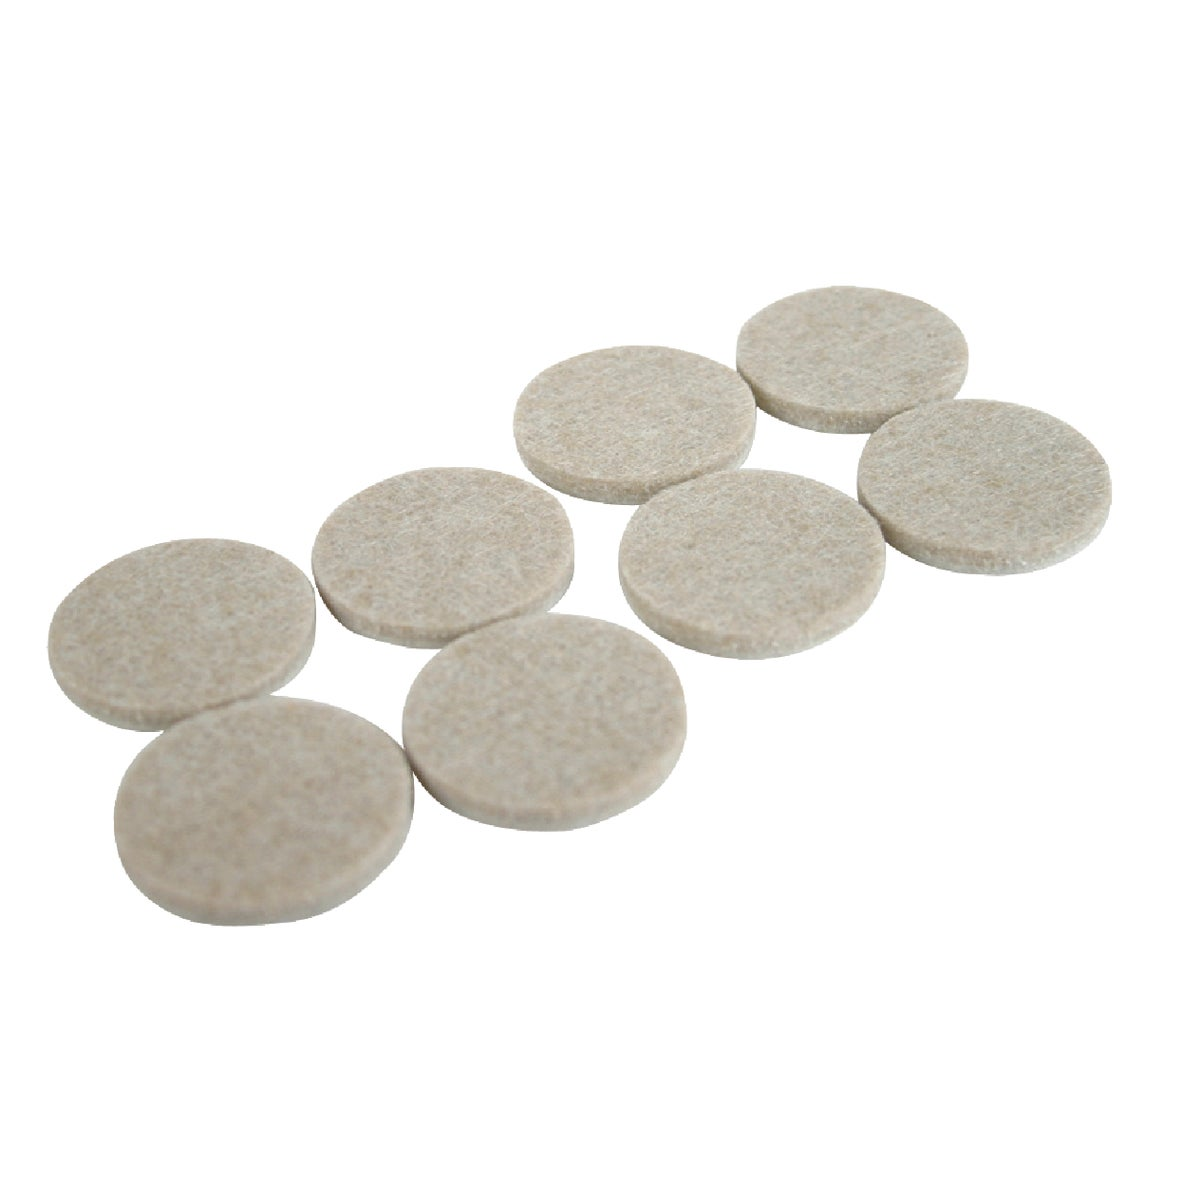 "1-1/2"" RND FELT PADS - 63712 by Magic Sliders"